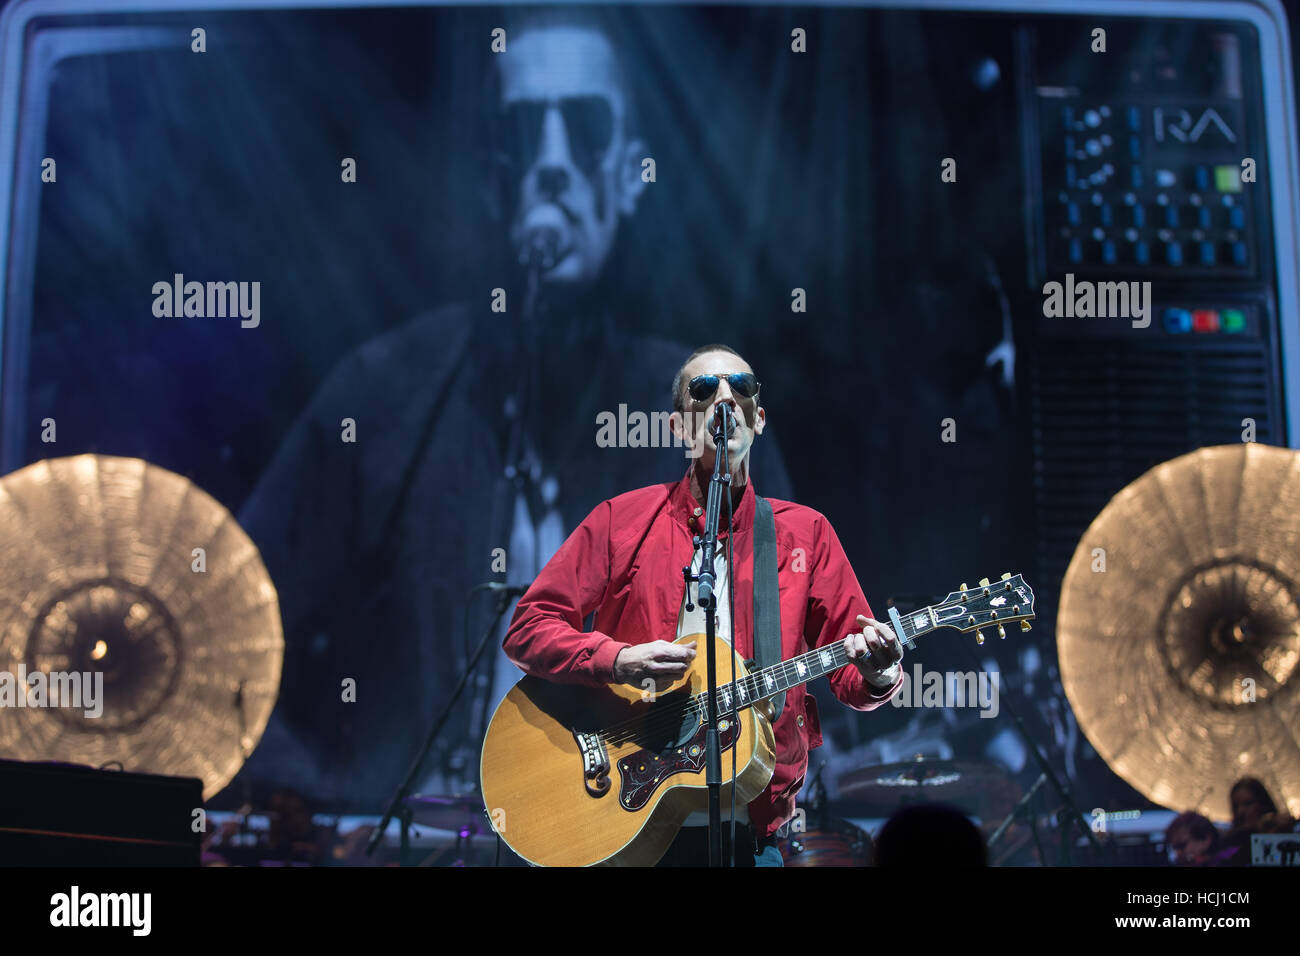 London, England, UK. 9th December 2016, Richard Ashcroft performs These People tour  at the O2 Arena, England.© Stock Photo